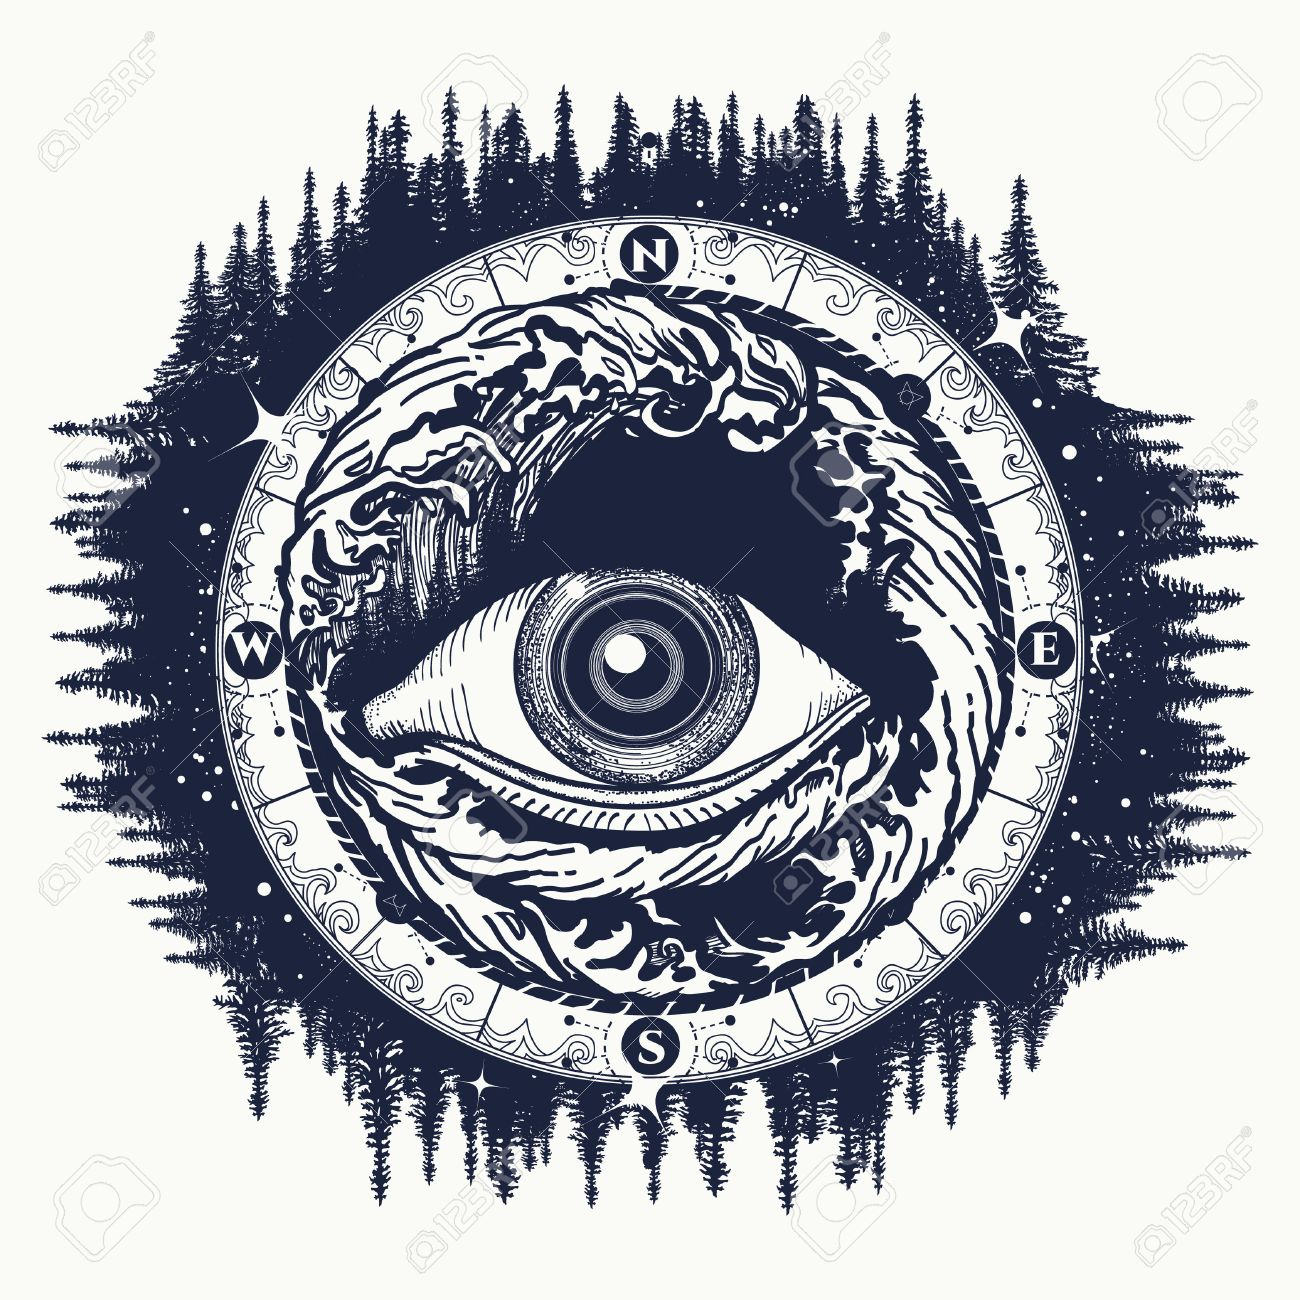 All Seeing Eye Tattoo Tourism In A Mystical Style Vector Alchemy Spirituality